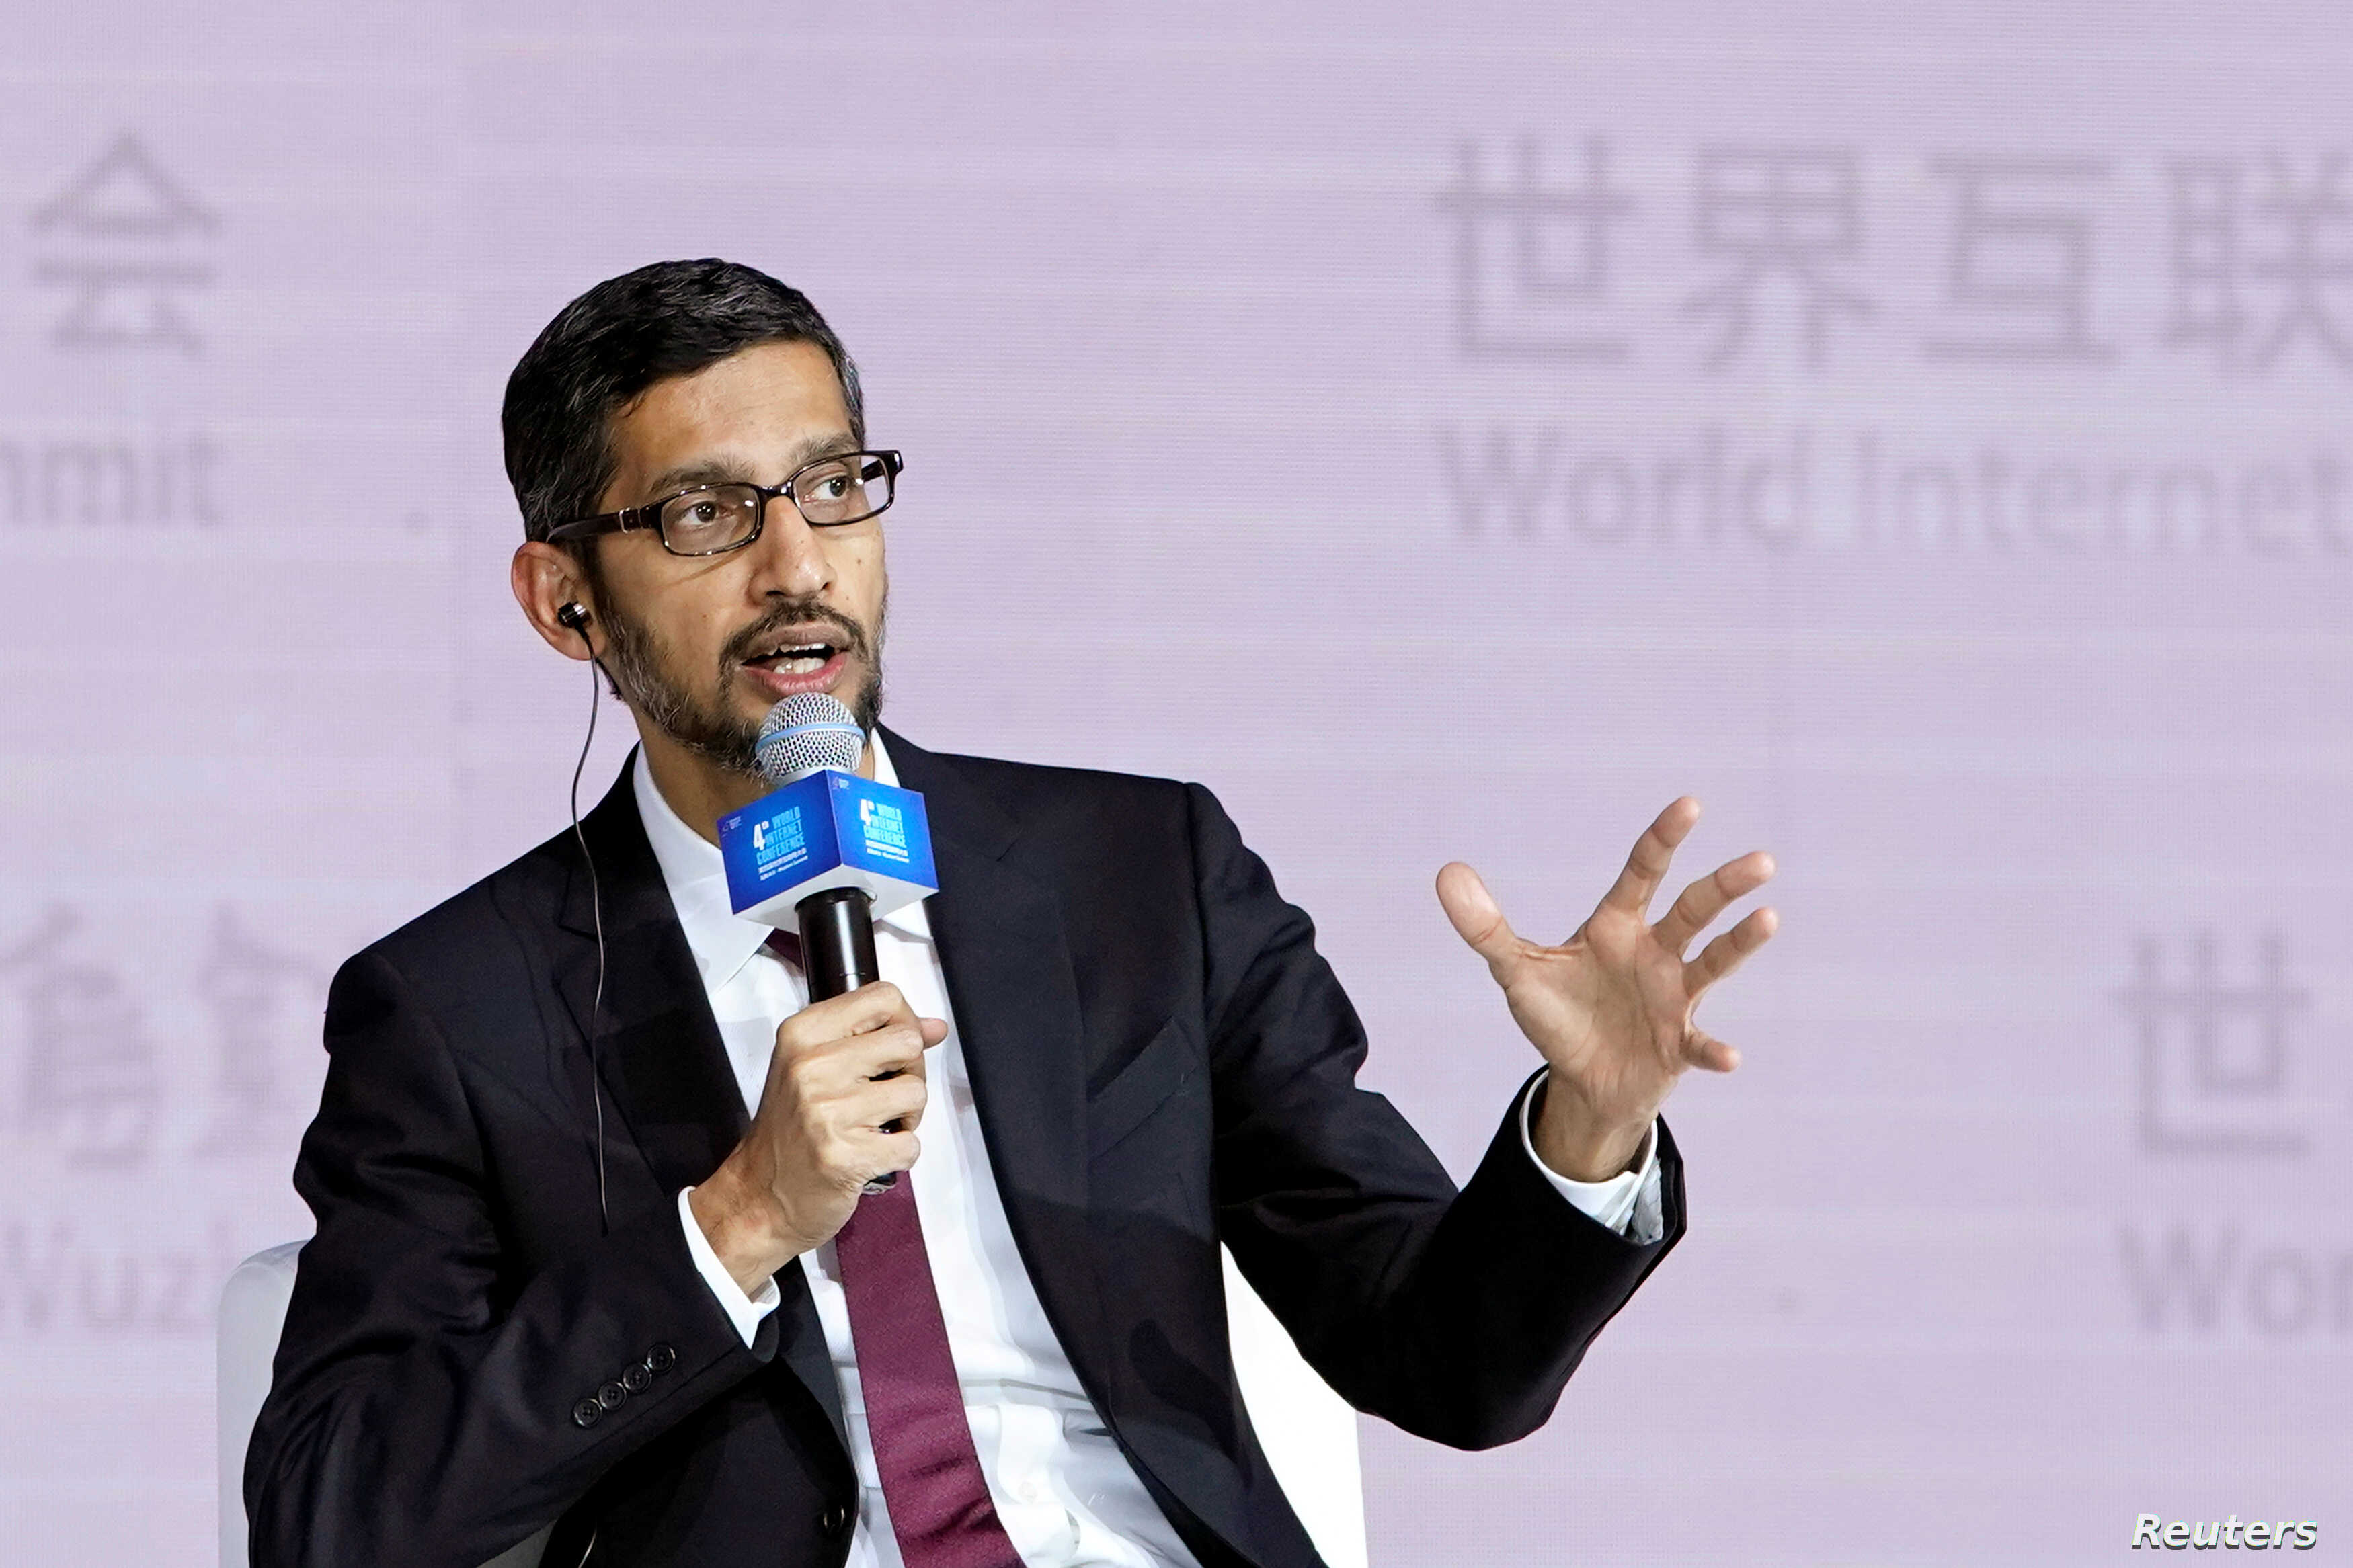 Google Inc. CEO Sundar Pichai speaks at a session of the fourth World Internet Conference in Wuzhen, China, Dec. 3, 2017.